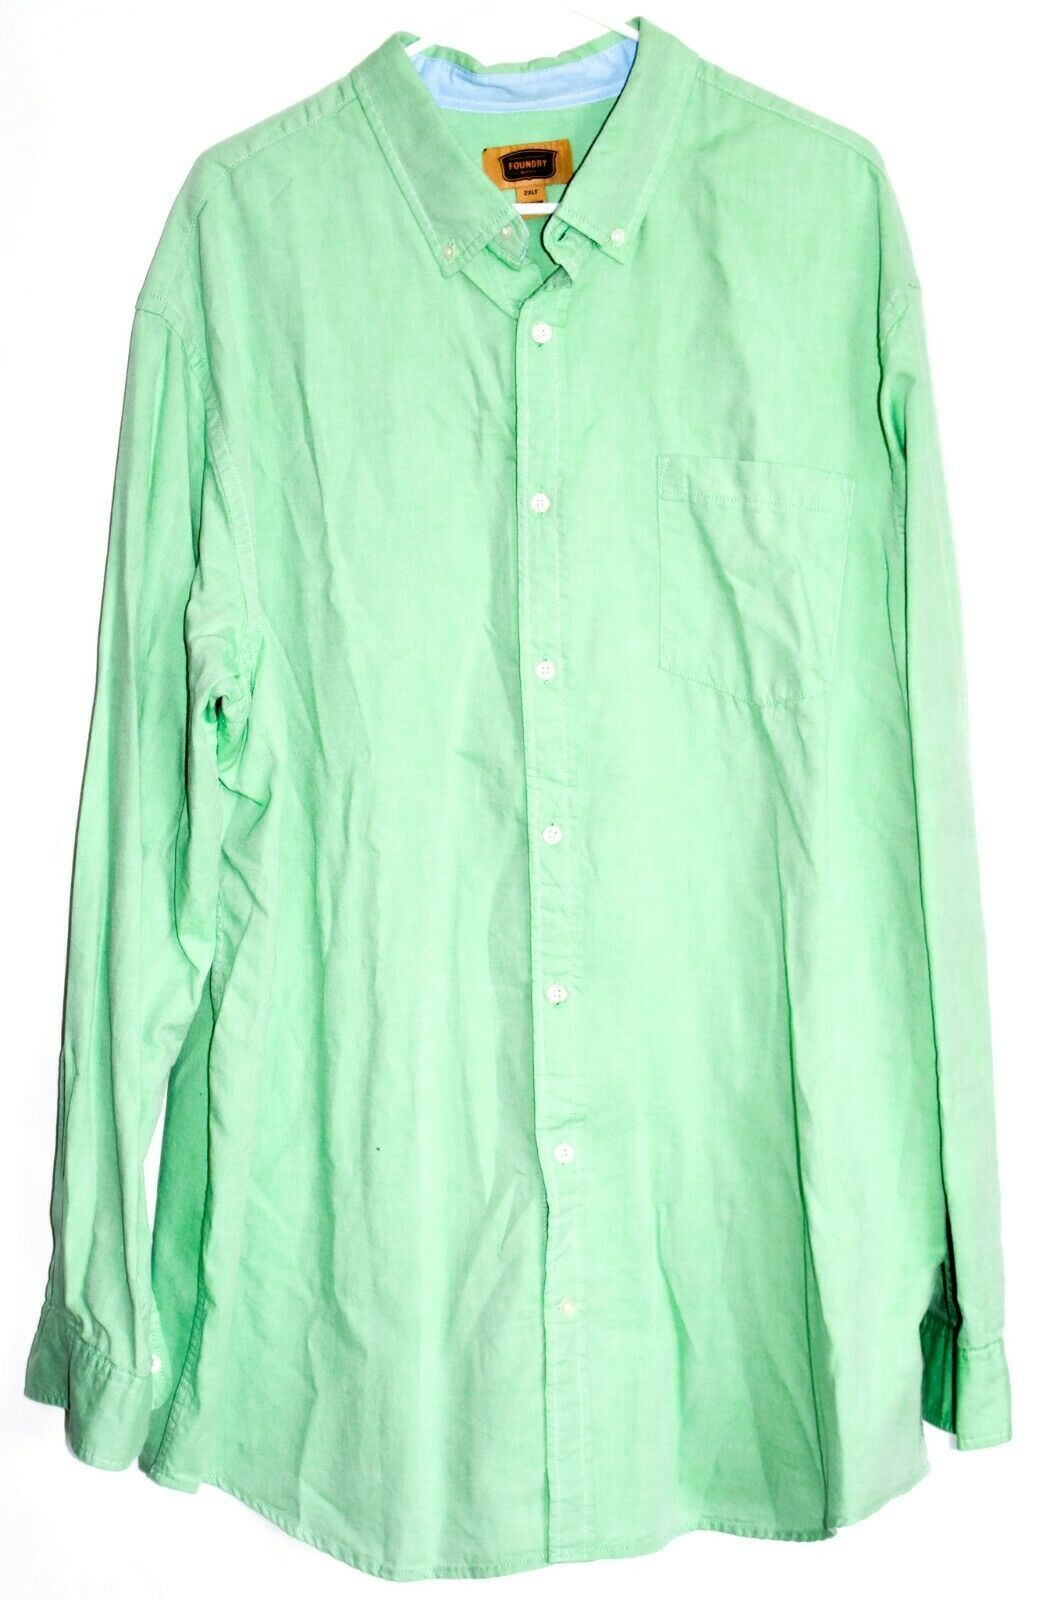 The Foundry Men's Mint Kelly Green Long Sleeve Button Down Shirt Size 2XLT